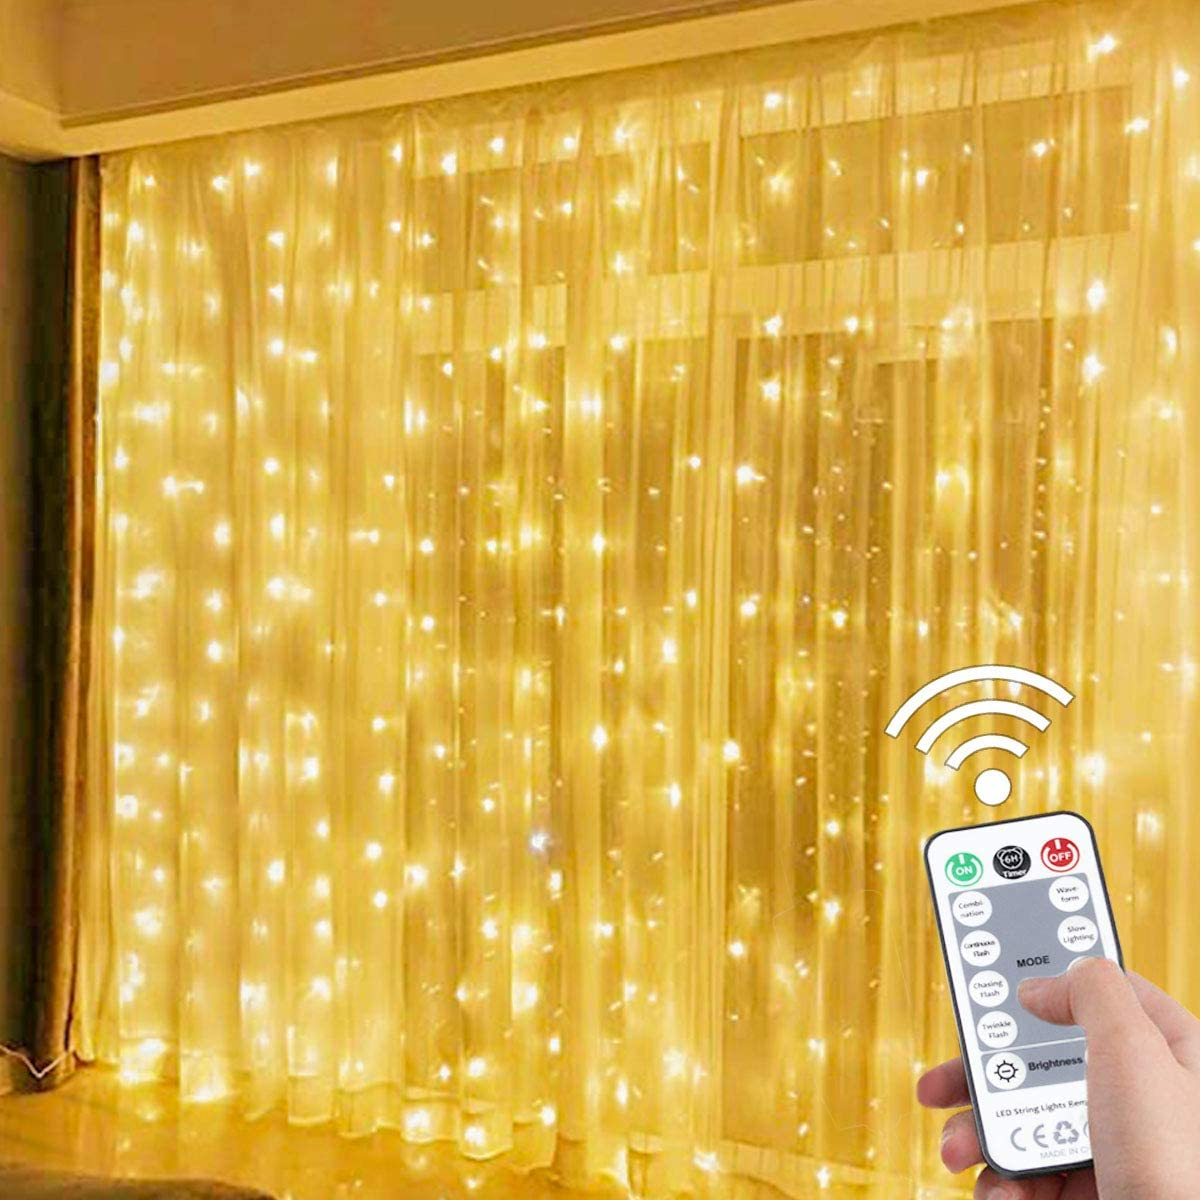 Suwitu Curtain String Lights, 300 LED Window Curtain Fairy Lights Copper Wire Twinkle String Light USB Remote Control 8 Modes Hanging Light for Bedroom Indoor Home Wedding Garden Party (Warm White)